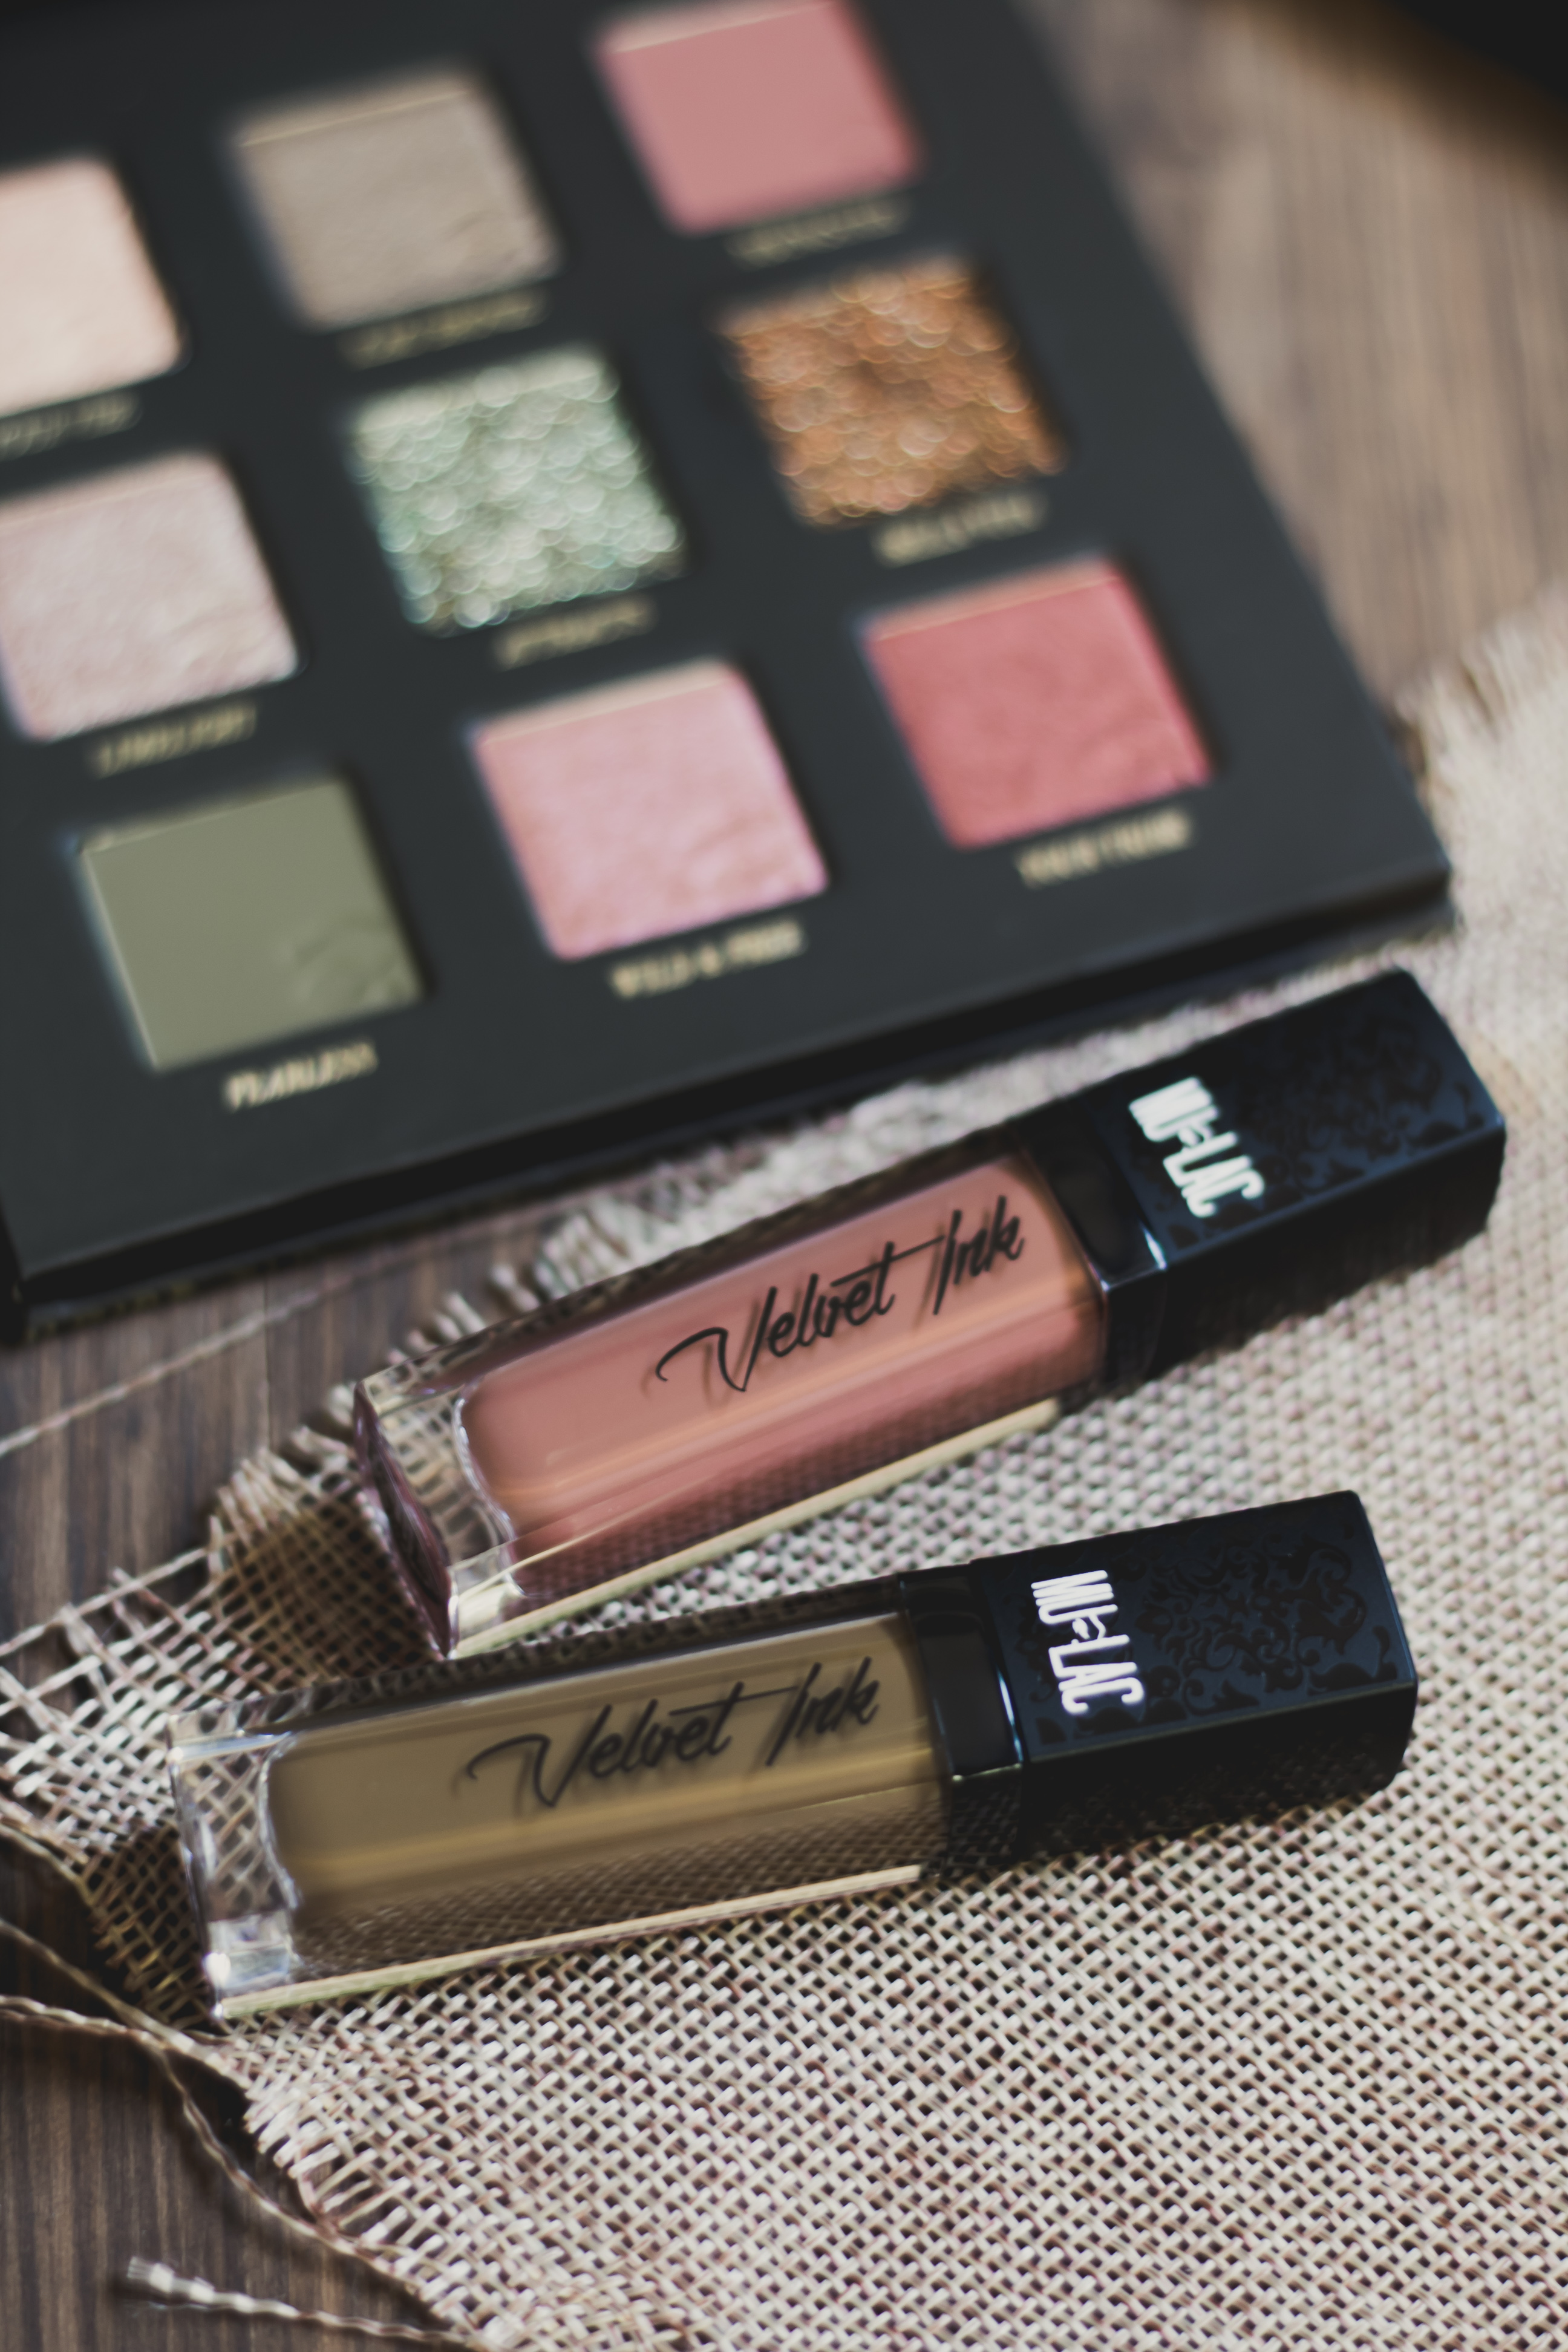 MULAC BRAVE COLLECTION BELLA VITA, YOUNG & BRAVE HEROLIKE NUDE VELVET INK LIPSTICK